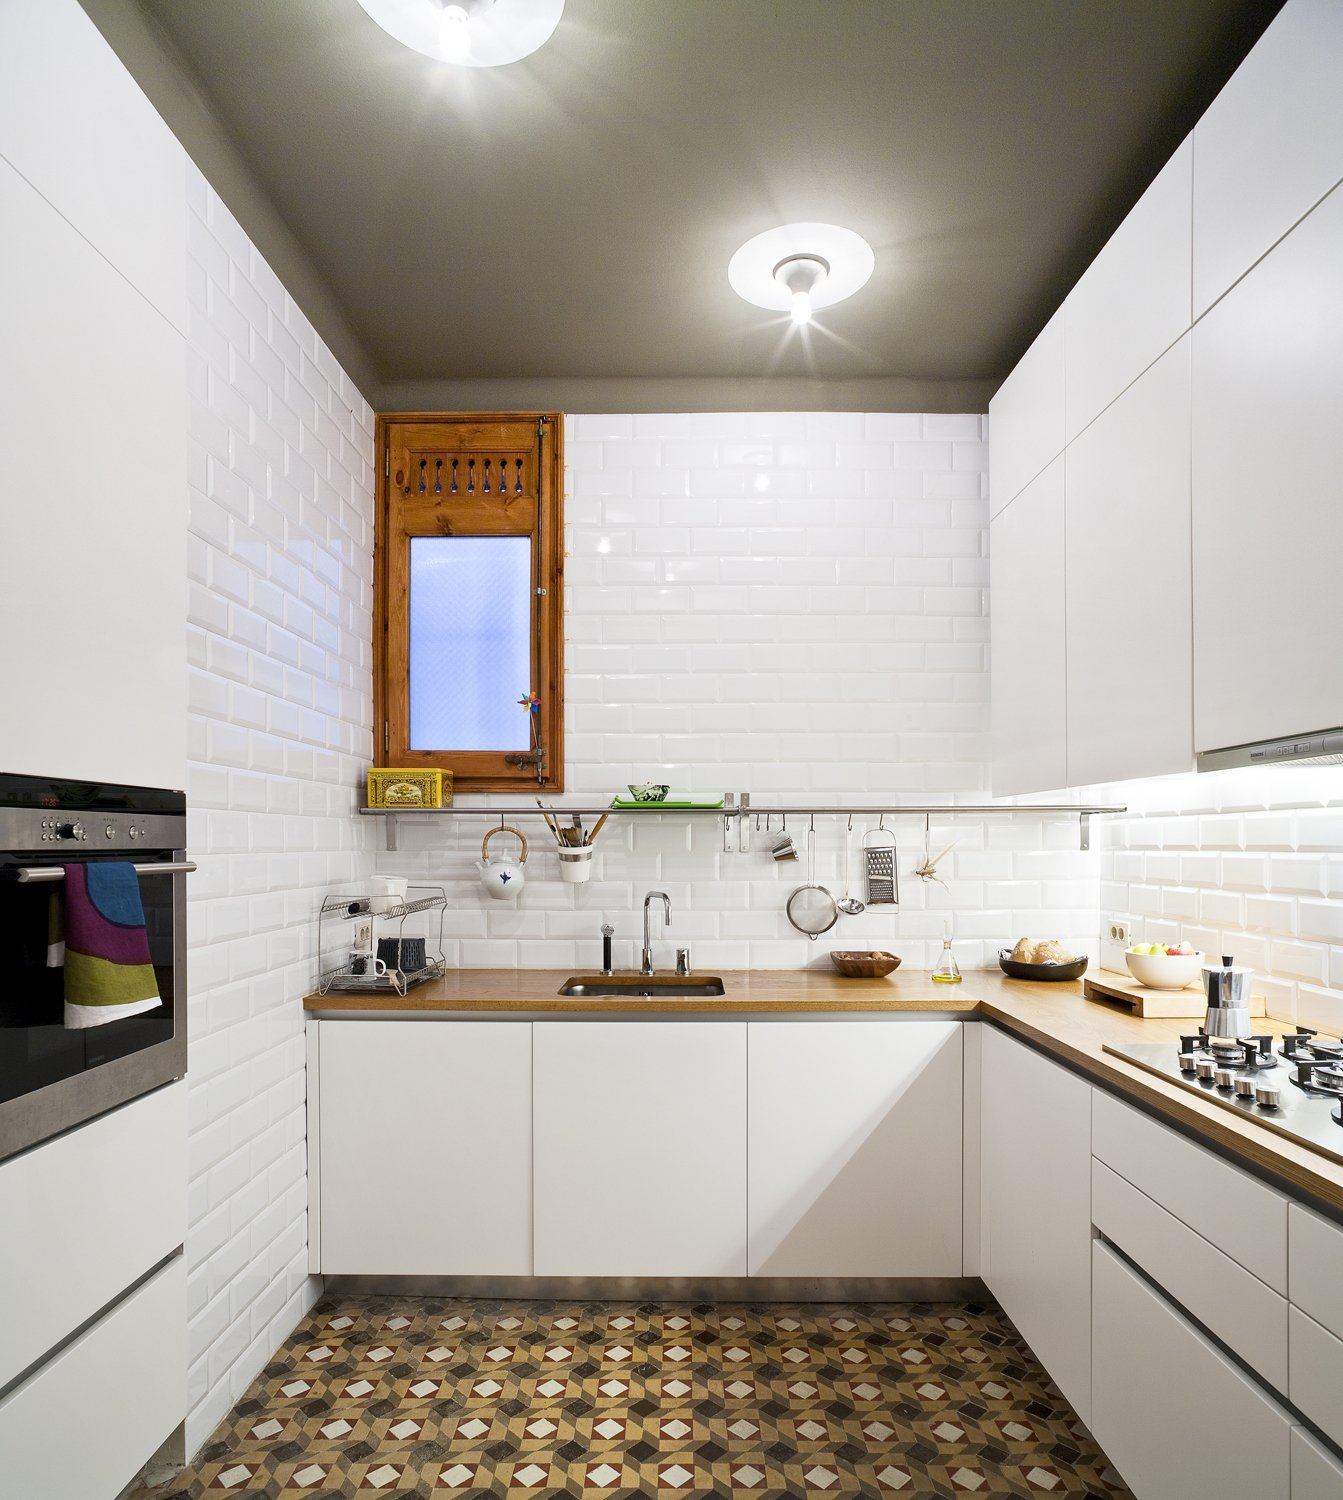 "Since the original kitchen was not functional, the architects built a new one from scratch while preserving the original tiles. ""We designed very plain oak cupboards so the floor would be the protagonist,"" Eugeni says. Ceiling lamps by Vico Magistretti illuminate the warm wood countertops."